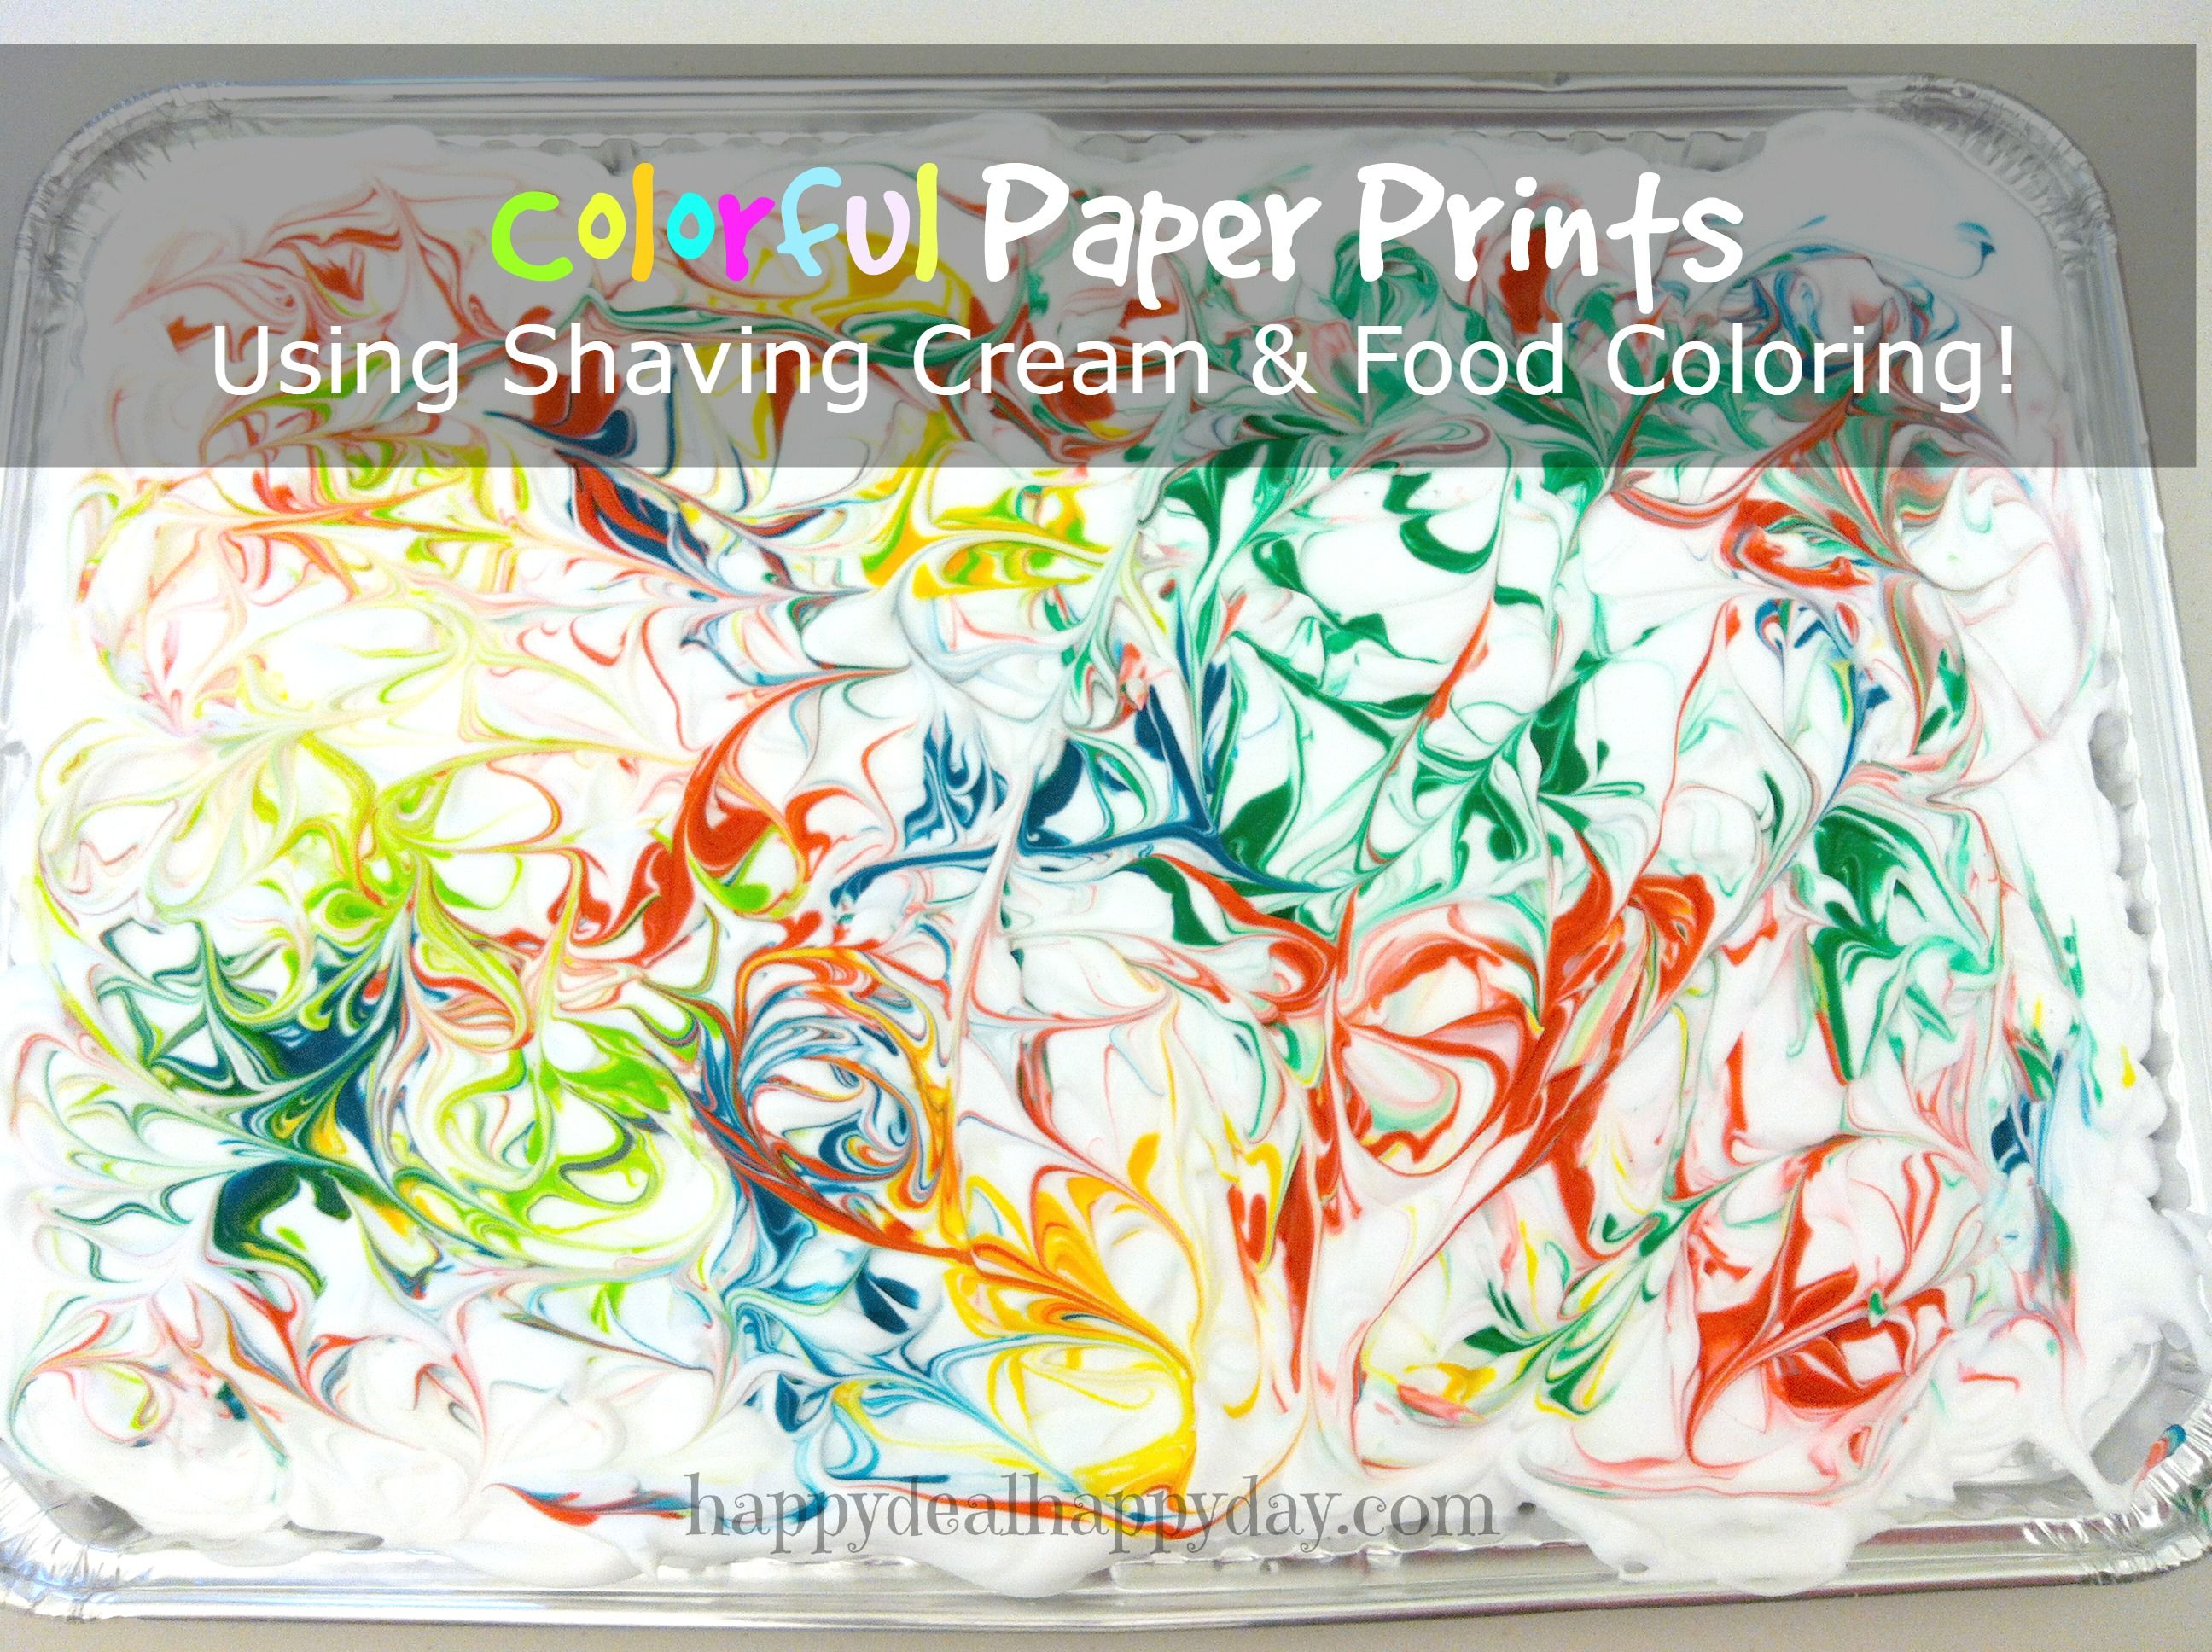 Colorful Paper Prints Using Shaving Cream & Food Coloring ...